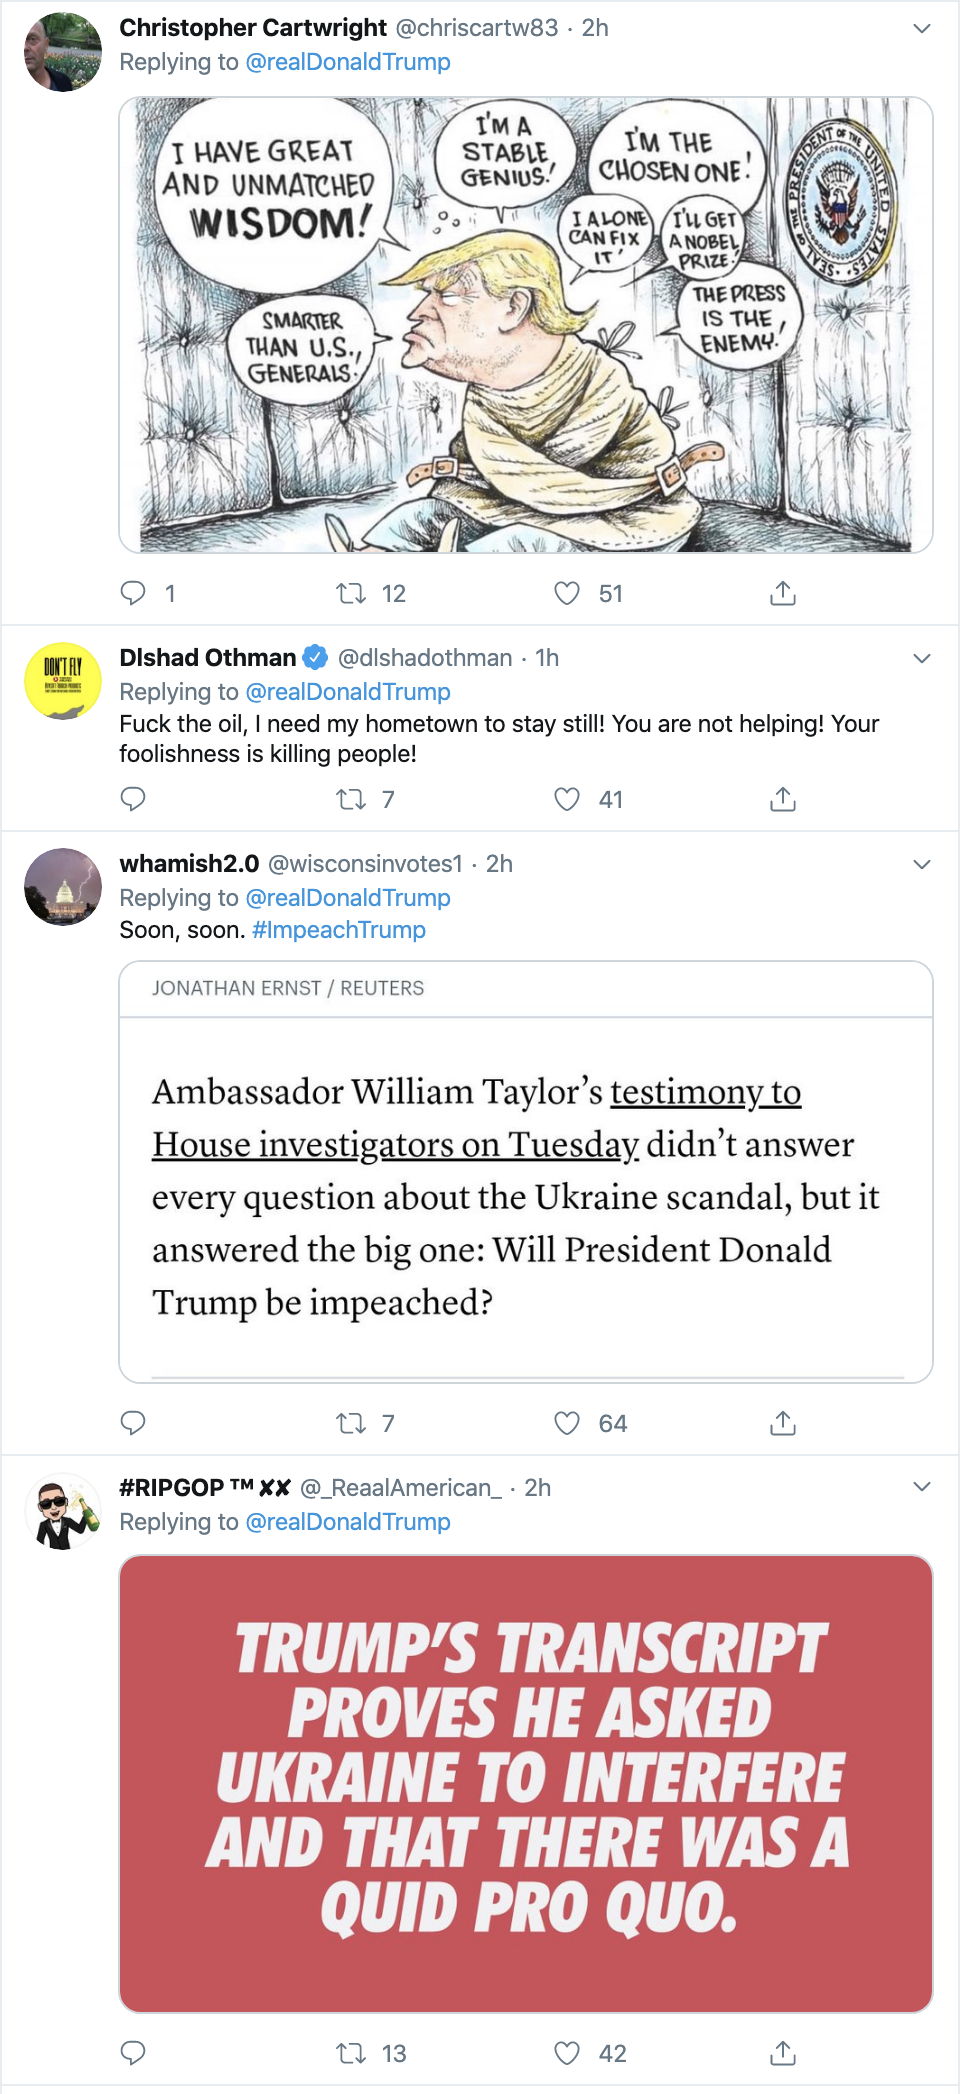 Screen-Shot-2019-10-24-at-1.04.44-PM Trump Tweets Pure Craziness & Gets Blistered For It Corruption Crime Donald Trump Economy Election 2020 Featured Foreign Policy Impeachment Investigation Military Politics Terrorism Violence War